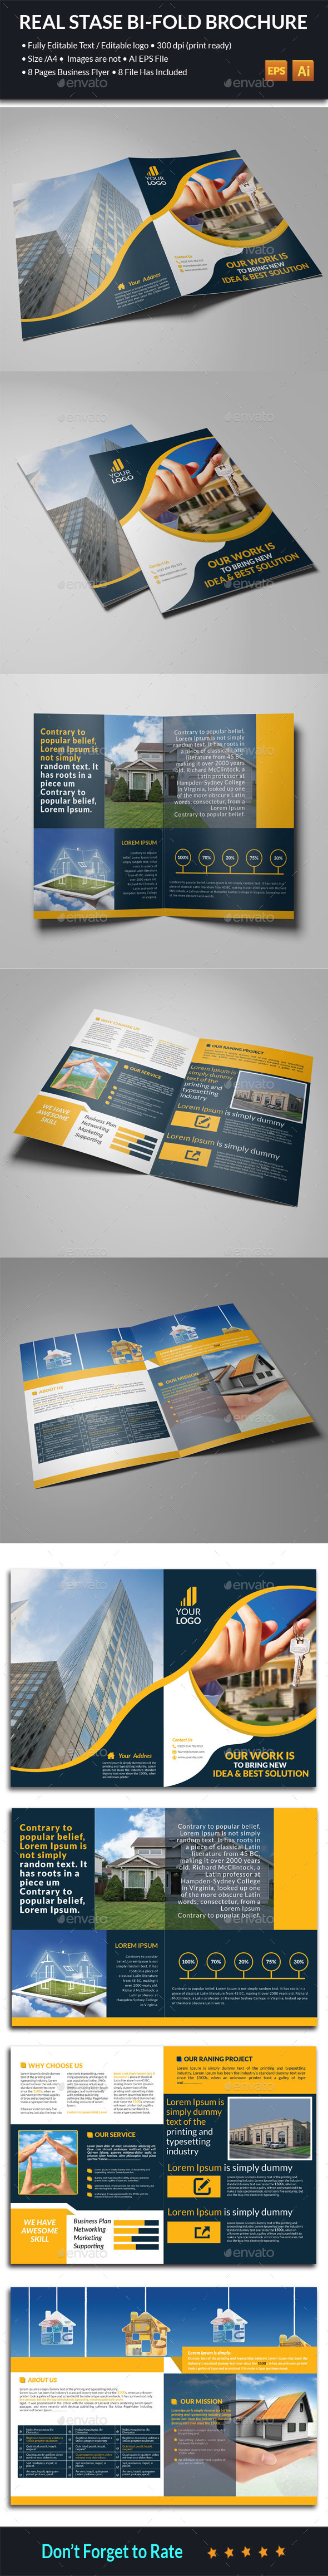 Real State Bi-Fold Brochure - Corporate Brochures